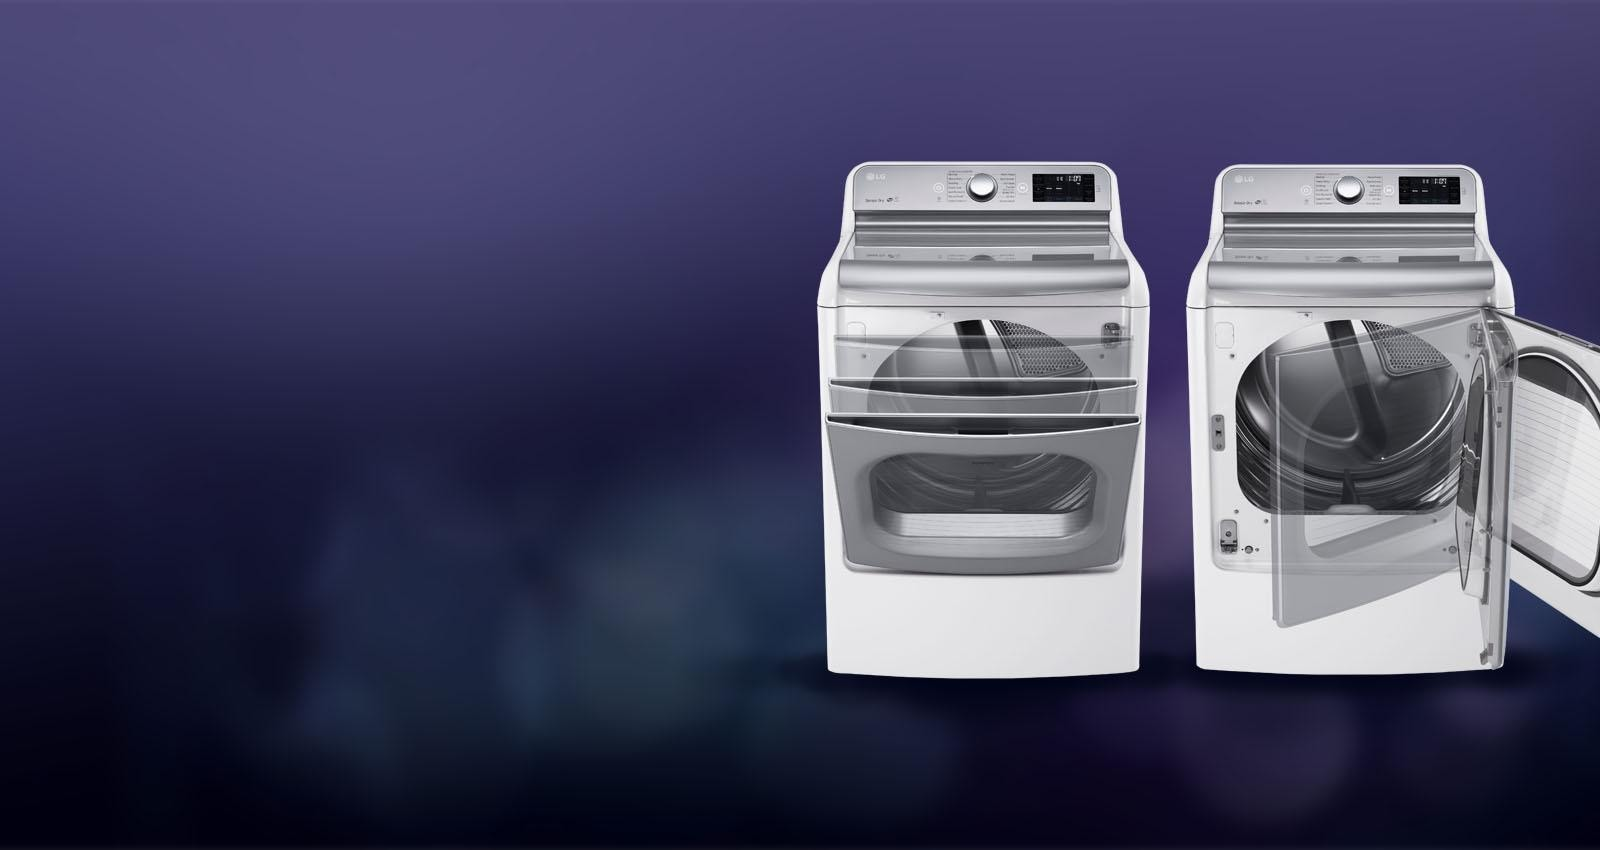 A look at how EasyLoad™ door of the LG DLEX7700 dryer functions